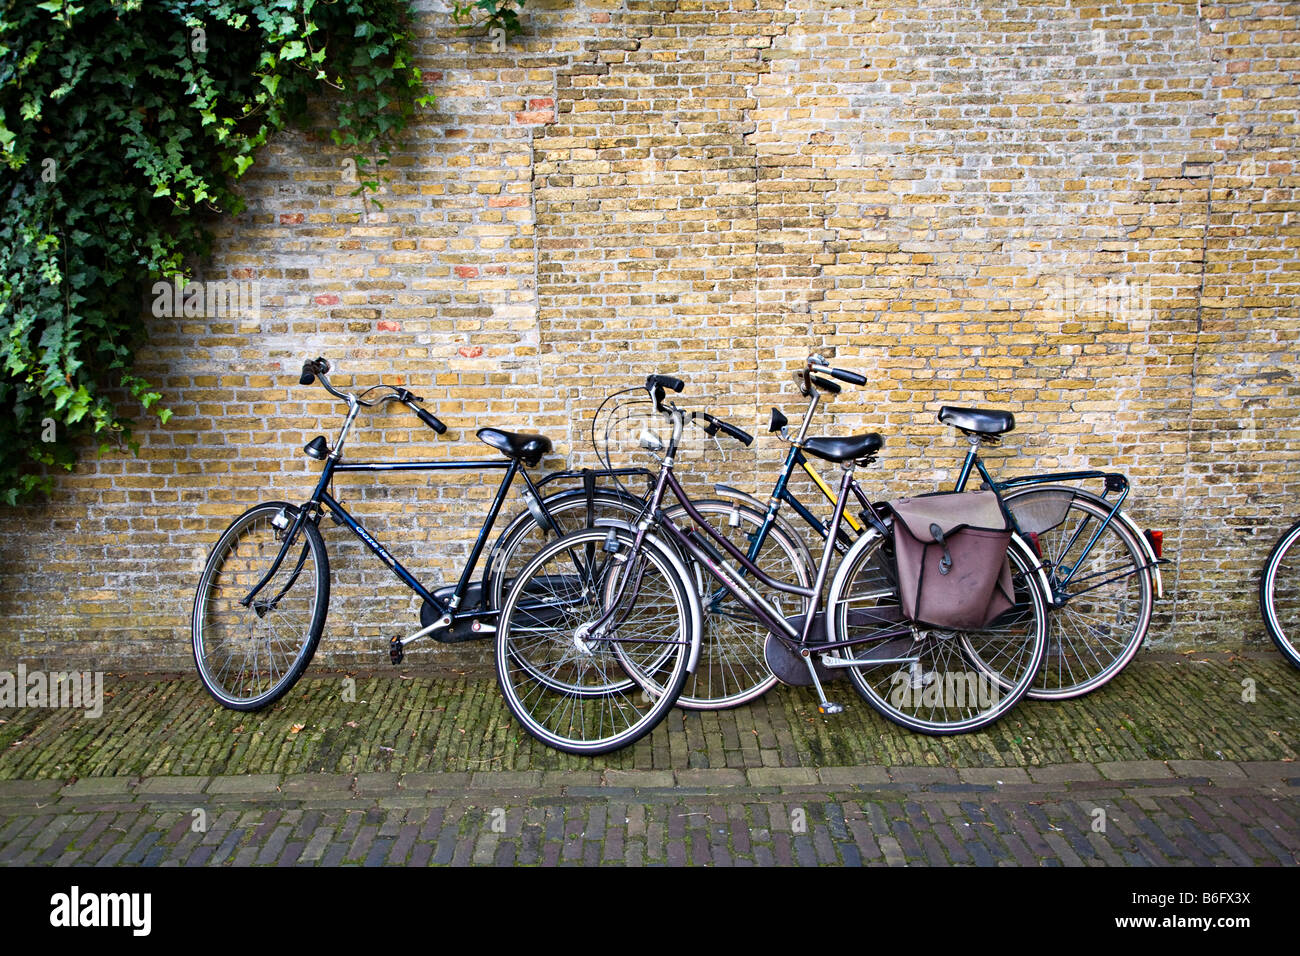 Bicycles leaning against old wall Enkhuizen Netherlands - Stock Image